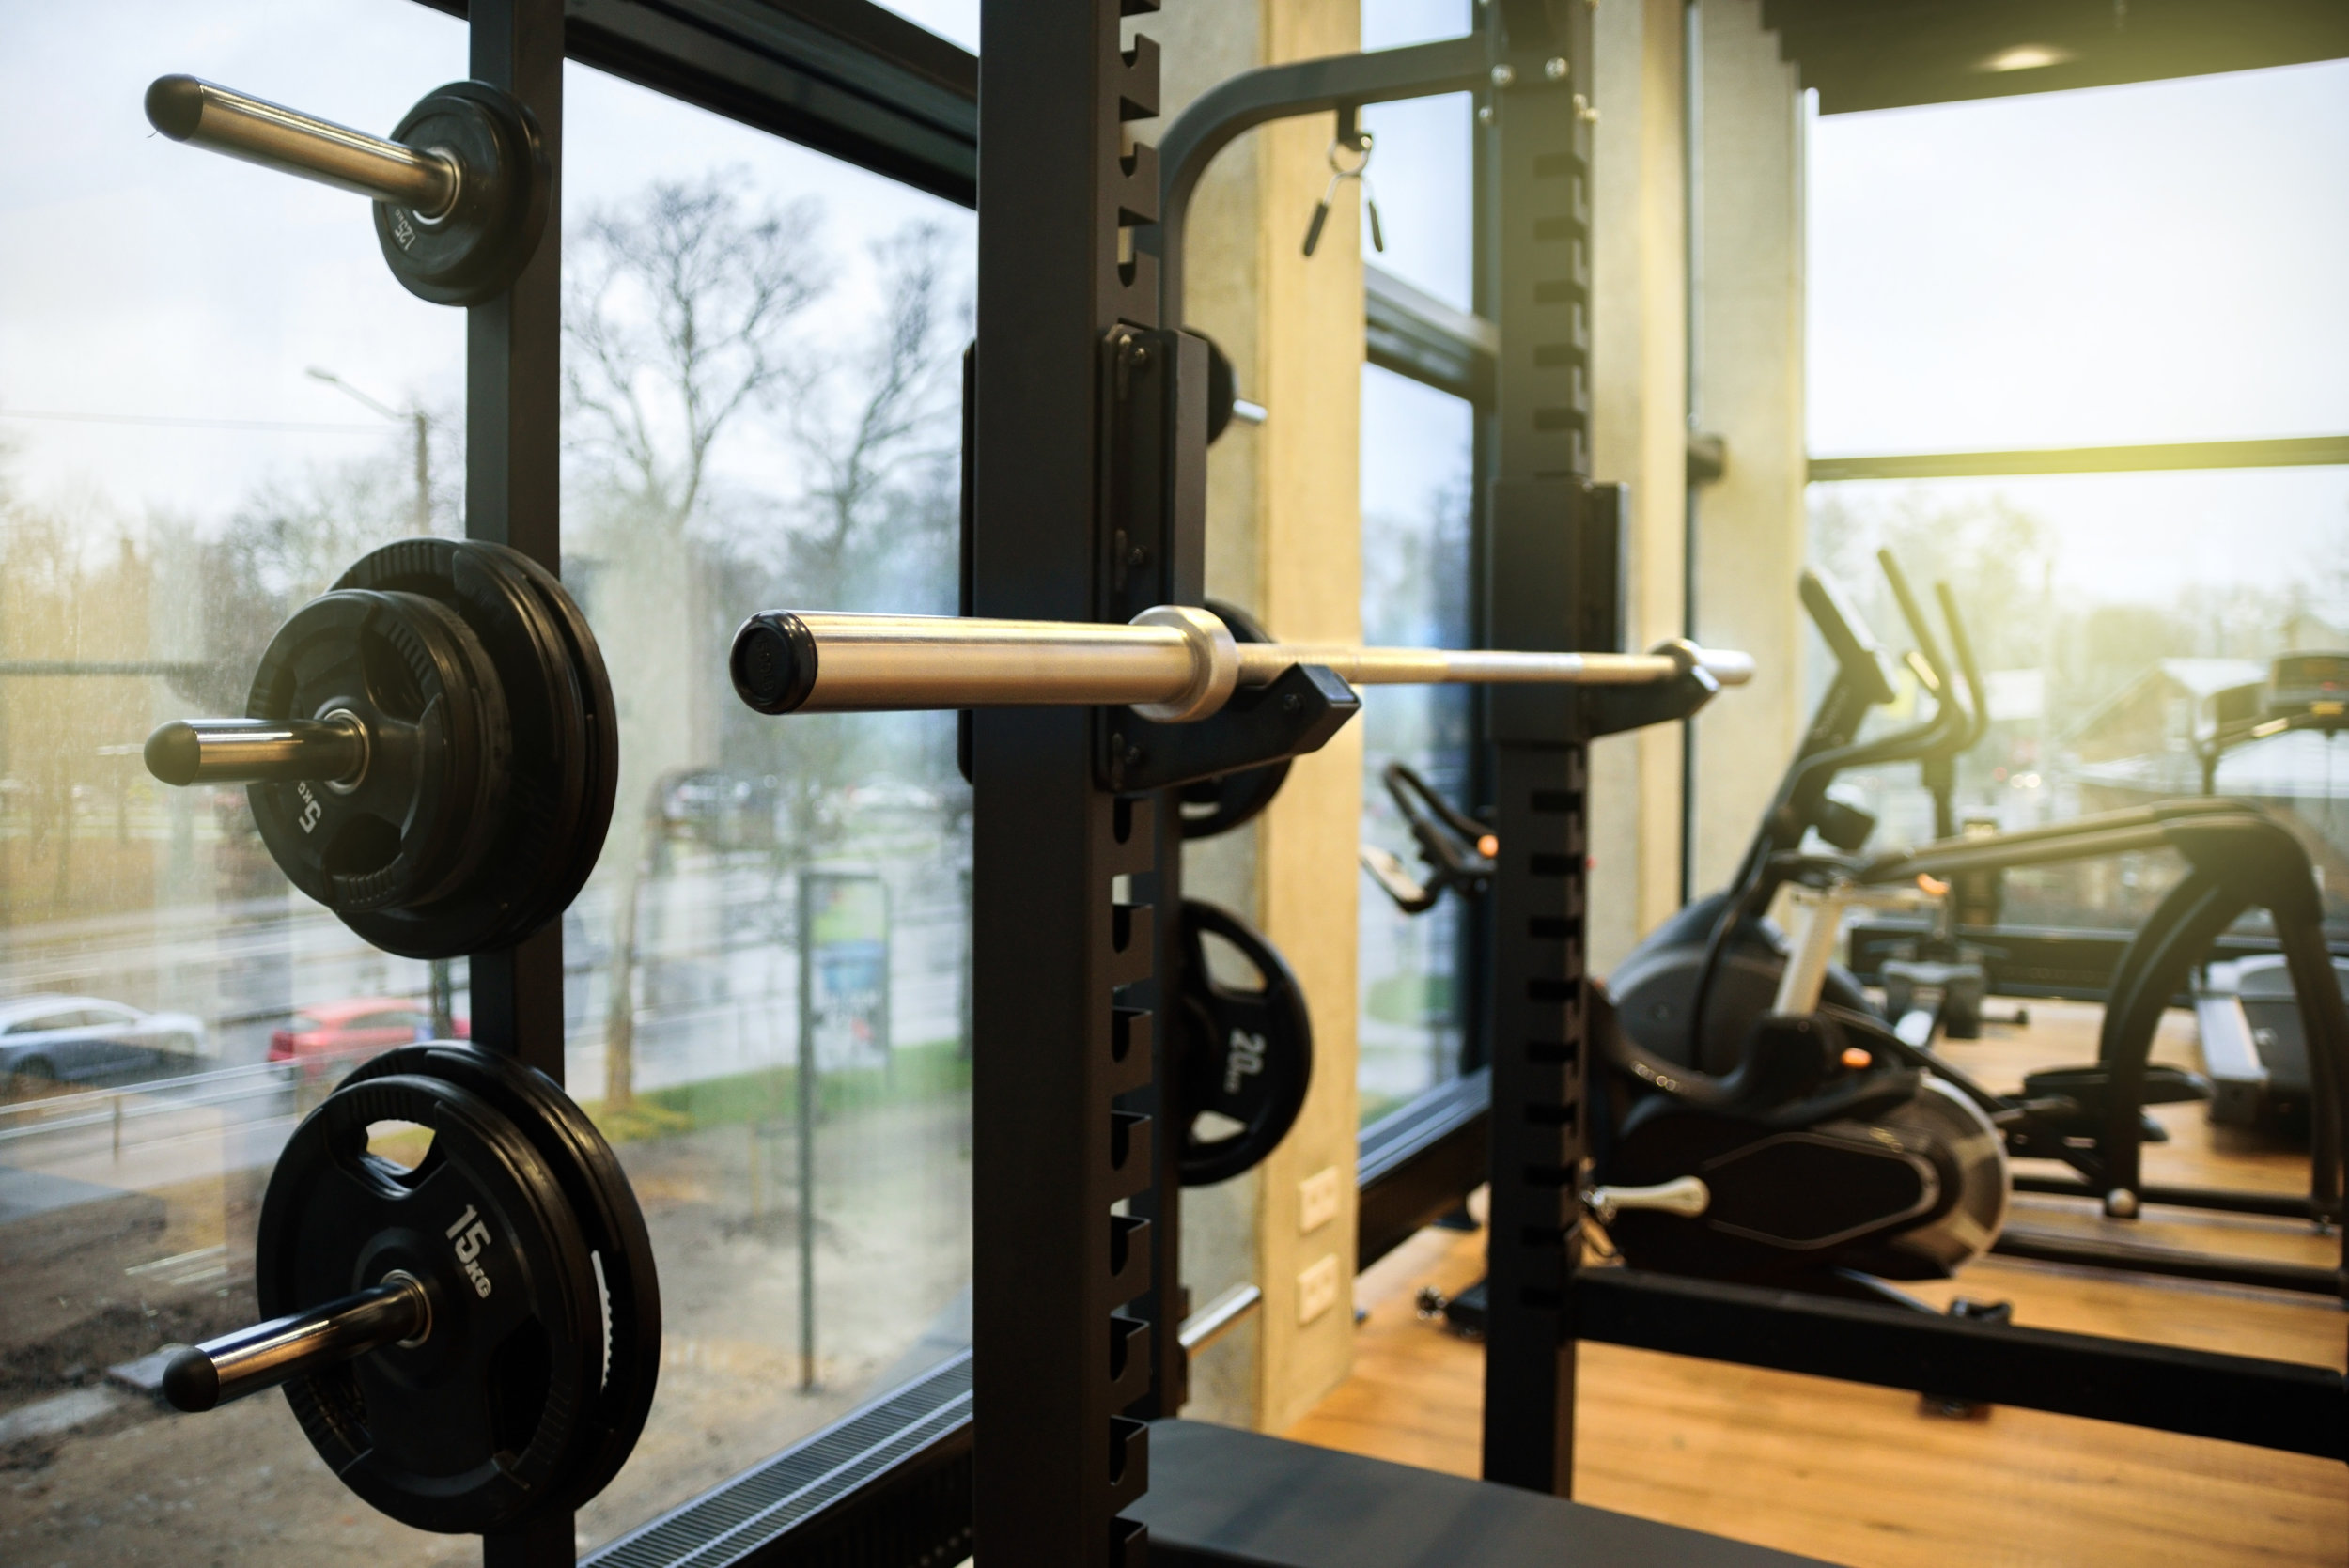 Canva - New Gym Interior with Equipments.jpg